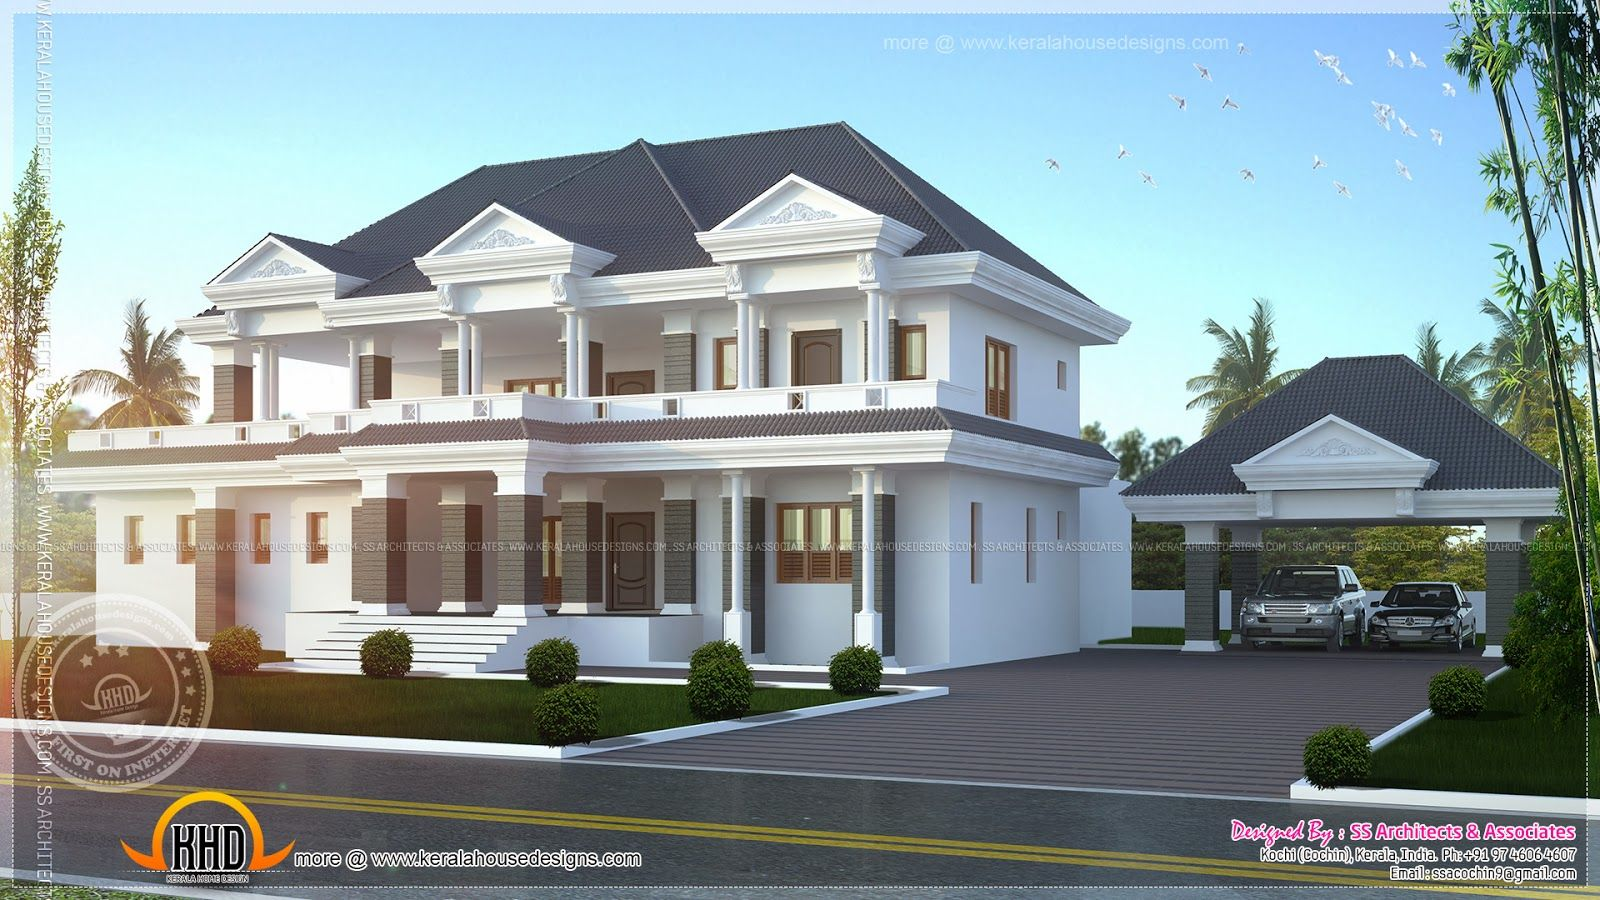 Luxury house plans posh luxury home plan audisb luxury for Luxury house plans with photos